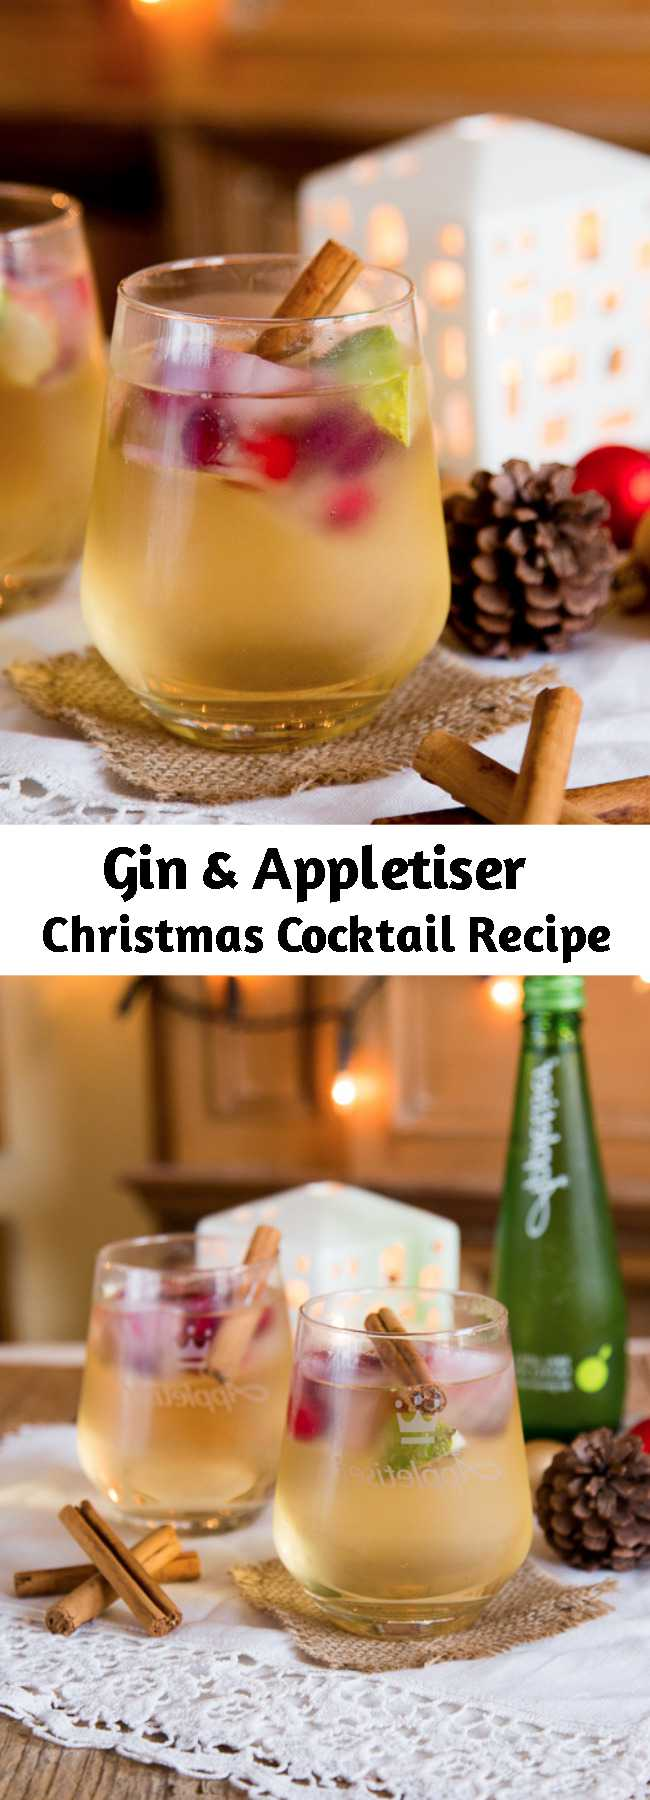 Gin & Appletiser Christmas Cocktail Recipe - A fruity twist on a gin & tonic, this long refreshing cocktail is lightly spiced and perfect for a Christmas party. Easy to make and serve over ice. Take out the cinnamon stick and serve it in the summer too!